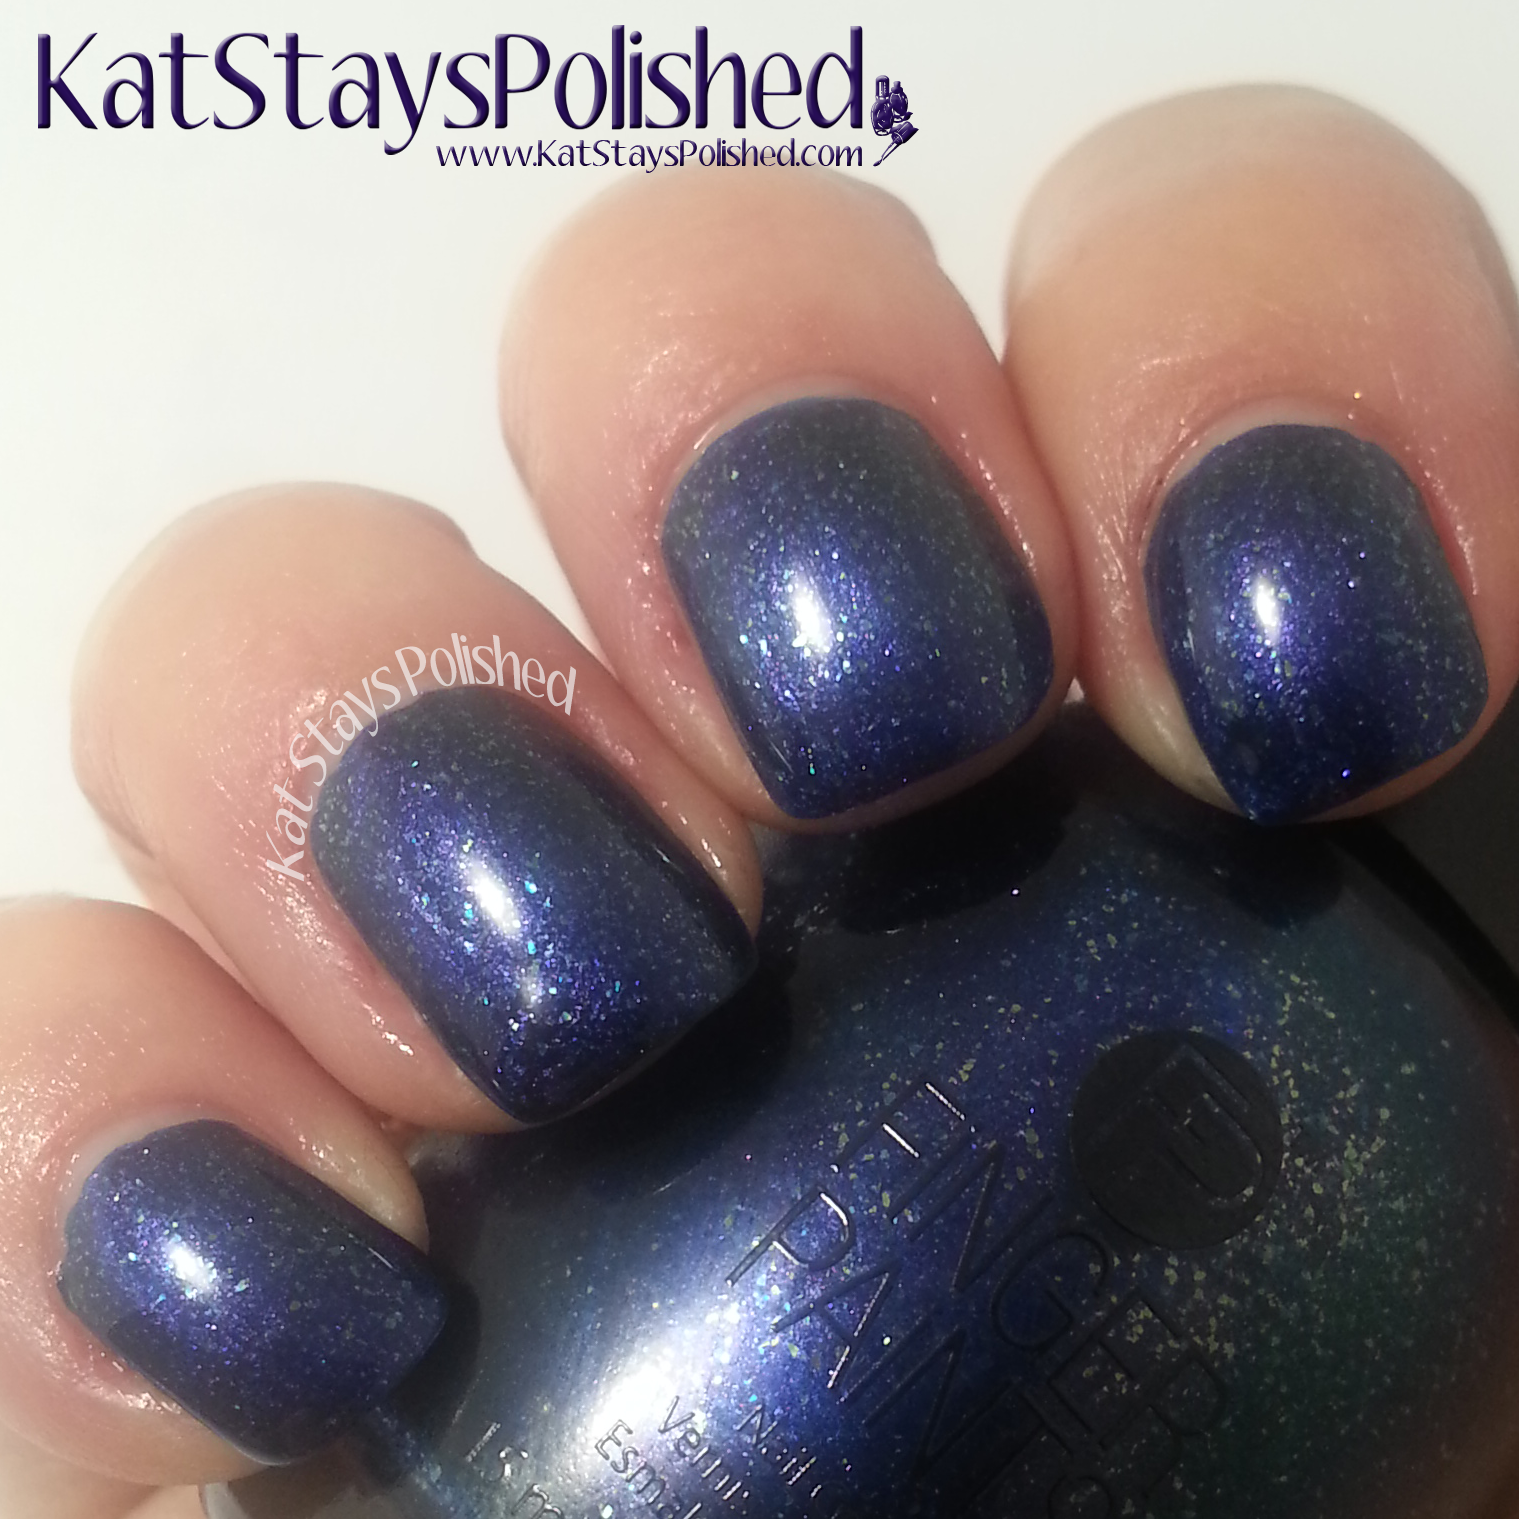 FingerPaints Masquerade Affair - Queen for a Night | Kat Stays Polished